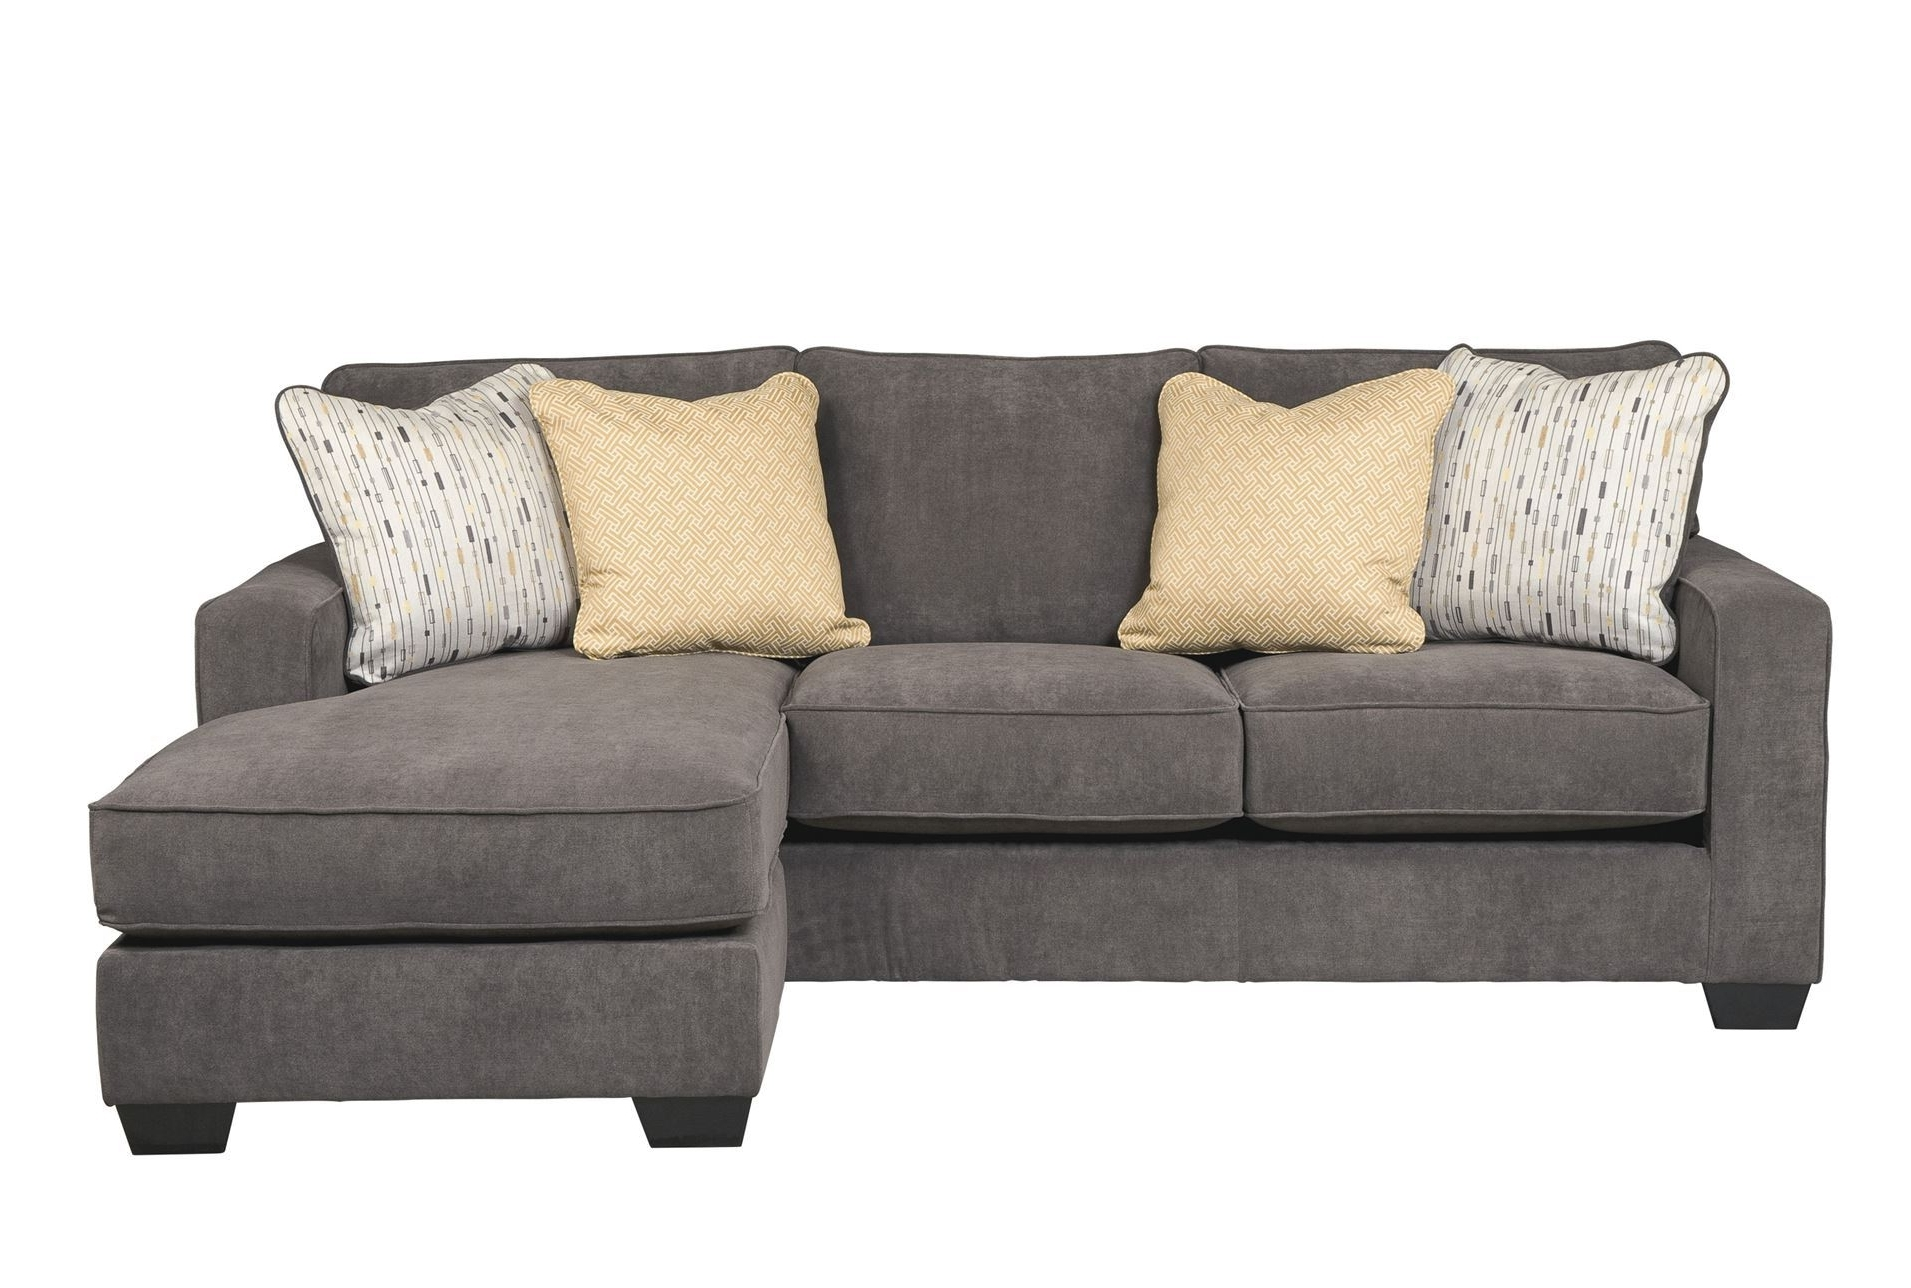 Most Popular L Grey Fabric Sectional Couch With Chaise And Three Seats Regarding Grey Sectional Sofas With Chaise (View 9 of 15)